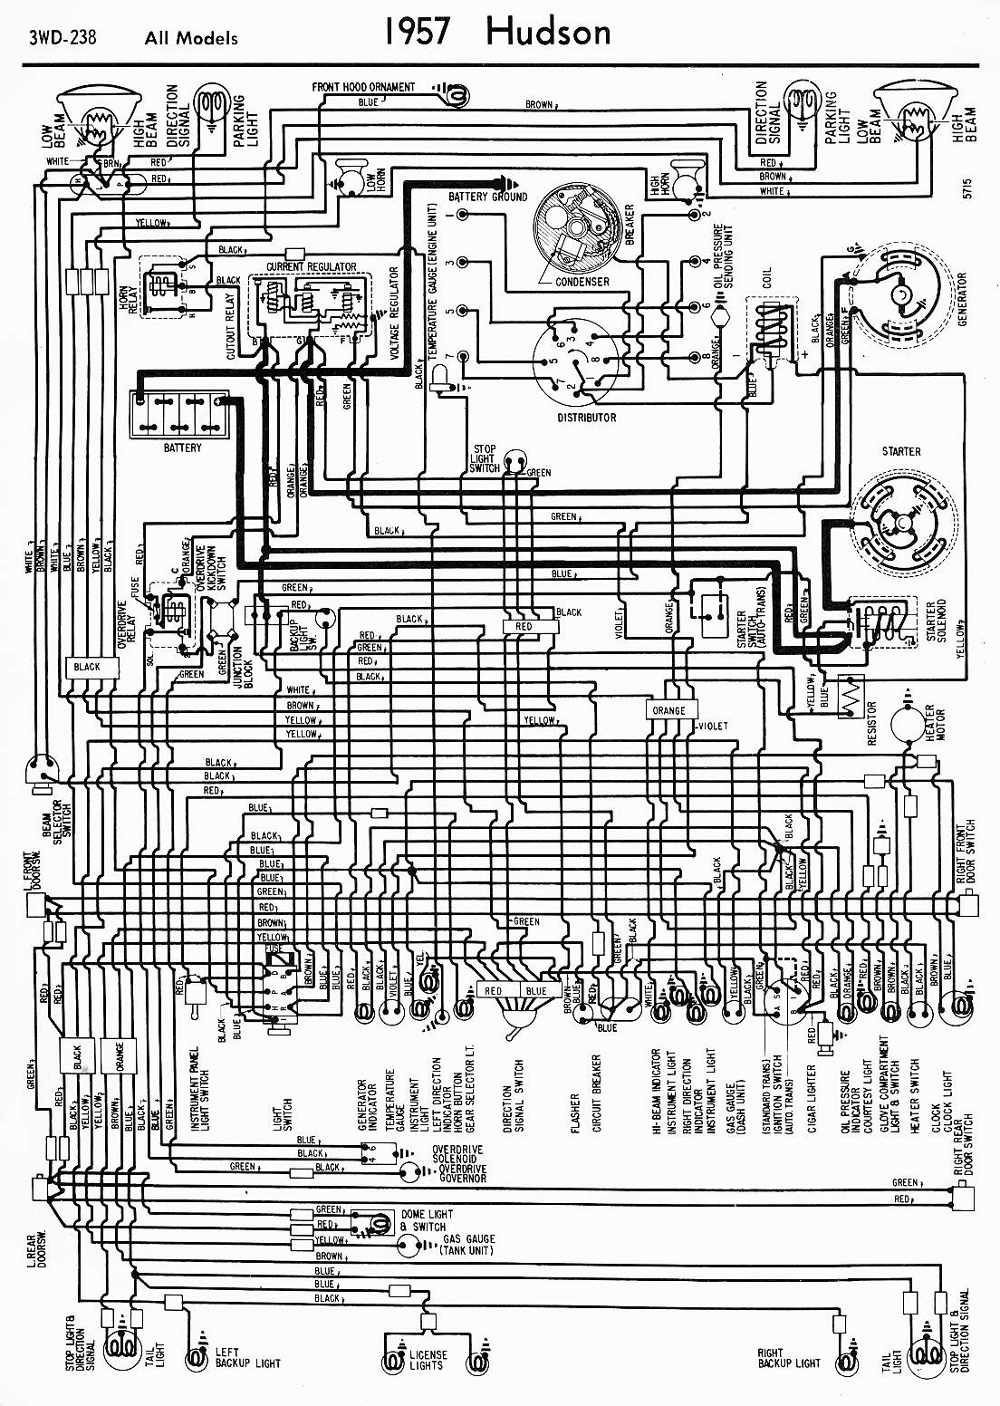 wiring diagrams of 1957 hudson all models?t\\\\\\\\\\\\\\\\\\\\\\\\\\\\\\\\\\\\\\\\\\\\\\\\\\\\\\\\\\\\\\\\\\\\\\\\\\\\\\\\\\\\\\\\\\\\\\\\\\\\\\\\\\\\\\\\\\\\\\\\\\\\\\\\\\\\\\\\\\\\\\\\\\\\\\\\\\\\\\\\\\\\\\\\\\\\\\\\\\\\\\\\\\\\\\\\\\\\\\\\\\\\\\\\\\\\\\\\\\\\\\\\\\\\\\\\\\\\\\\\\\\\\\\\\\\\\\\\\\\\\\\\\\\\\\\\\\\\\\\\\\\\\\\\\\\\\\\\\\\\\\\\\\\\\\\\\\\\\\\\\\\\\\\\\\\\\\\\\\\\\\\\\\\\\\\\\\\\\\\\\\\\\\\\\\\\\\\\\\\\\\\\\\\\\\\\\\\\\\\\\\\\\\\\\\\\\\\\\\\\\\\\\\\\\\\\\\\\\\\\\\\\\\\\\\\\\\\\\\\\\\\\\\\\\\\\\\\\\\\\\\\\\\\\\\\\\\\\\\\\\\\\\\\\\\\=1529648681 wiring diagram for 1950 nash data wiring diagram